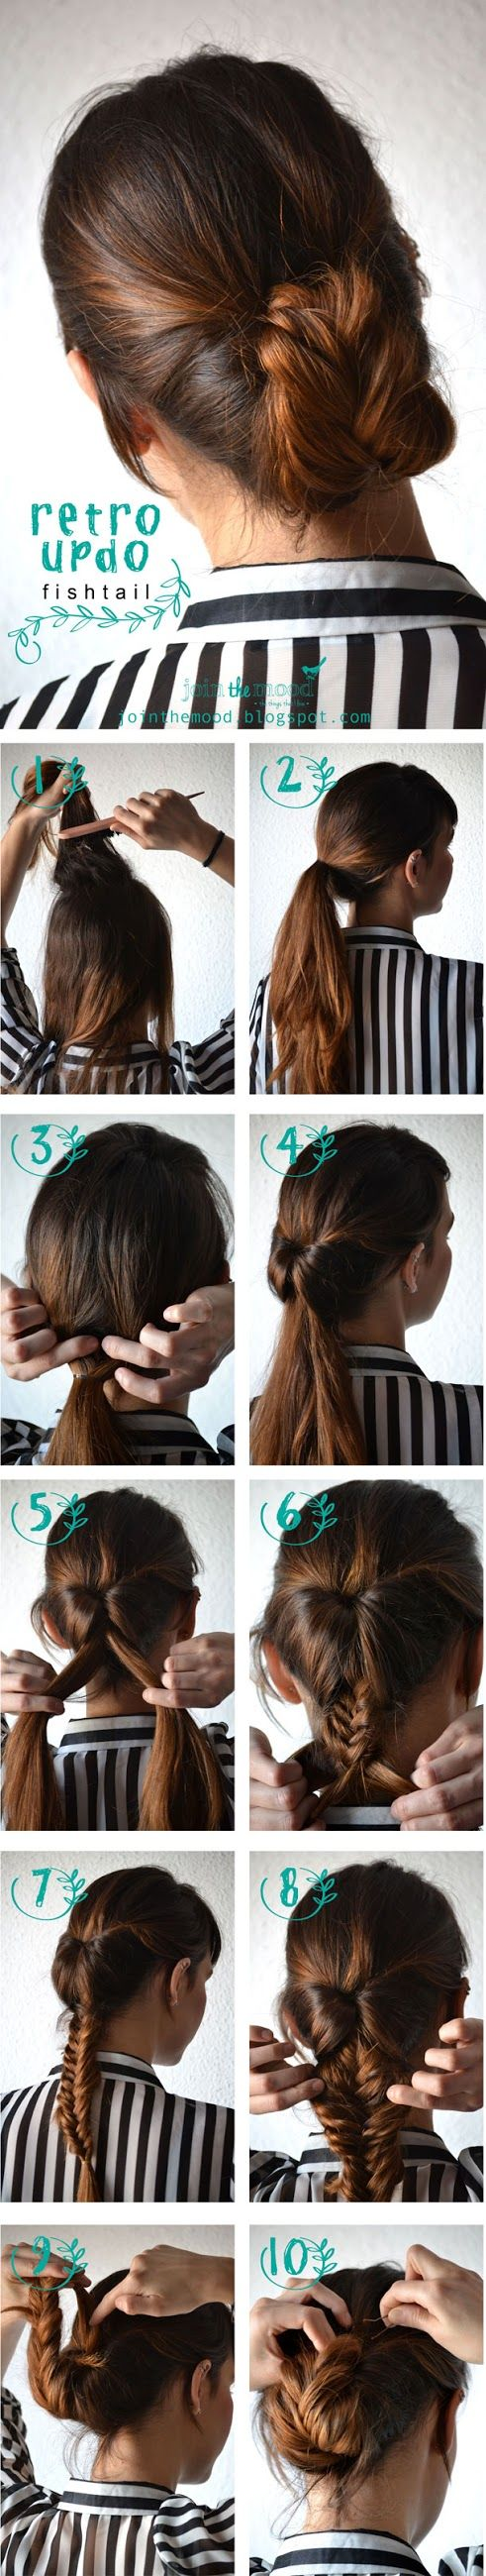 If you have some more time add a #fishbraid or normal #braid to the #do #hippy #chic #hair